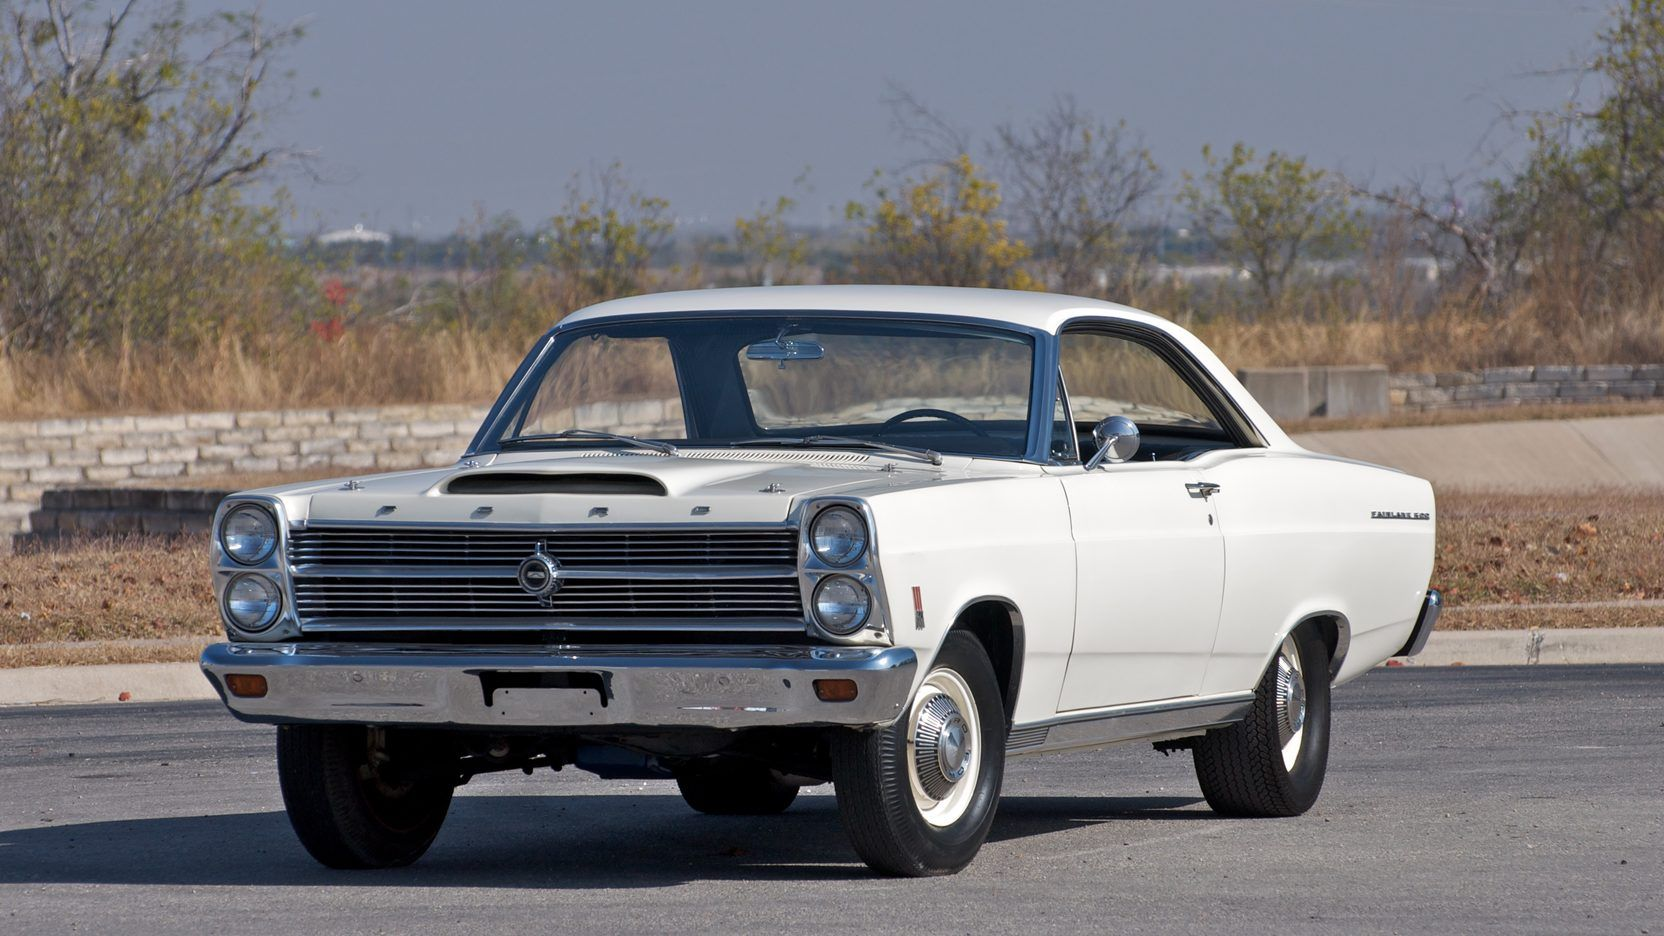 1966 Ford Fairlane 500 presented as Lot S129 at